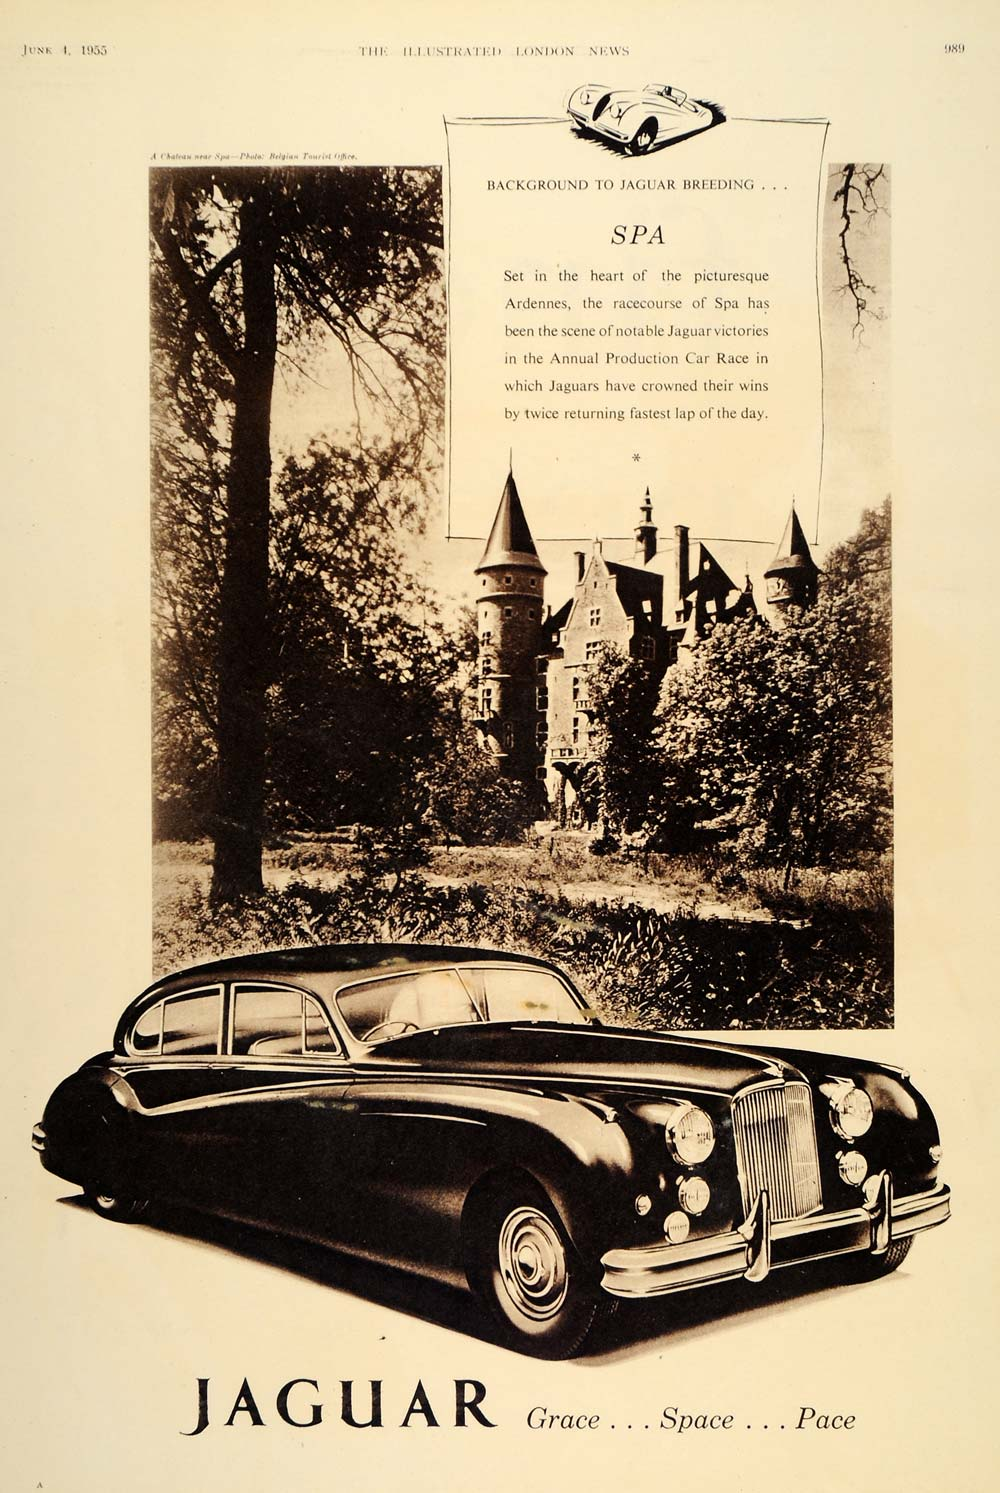 1955 Ad Jaguar Sport Car Spa Belgium Chateau Racetrack - ORIGINAL LN1